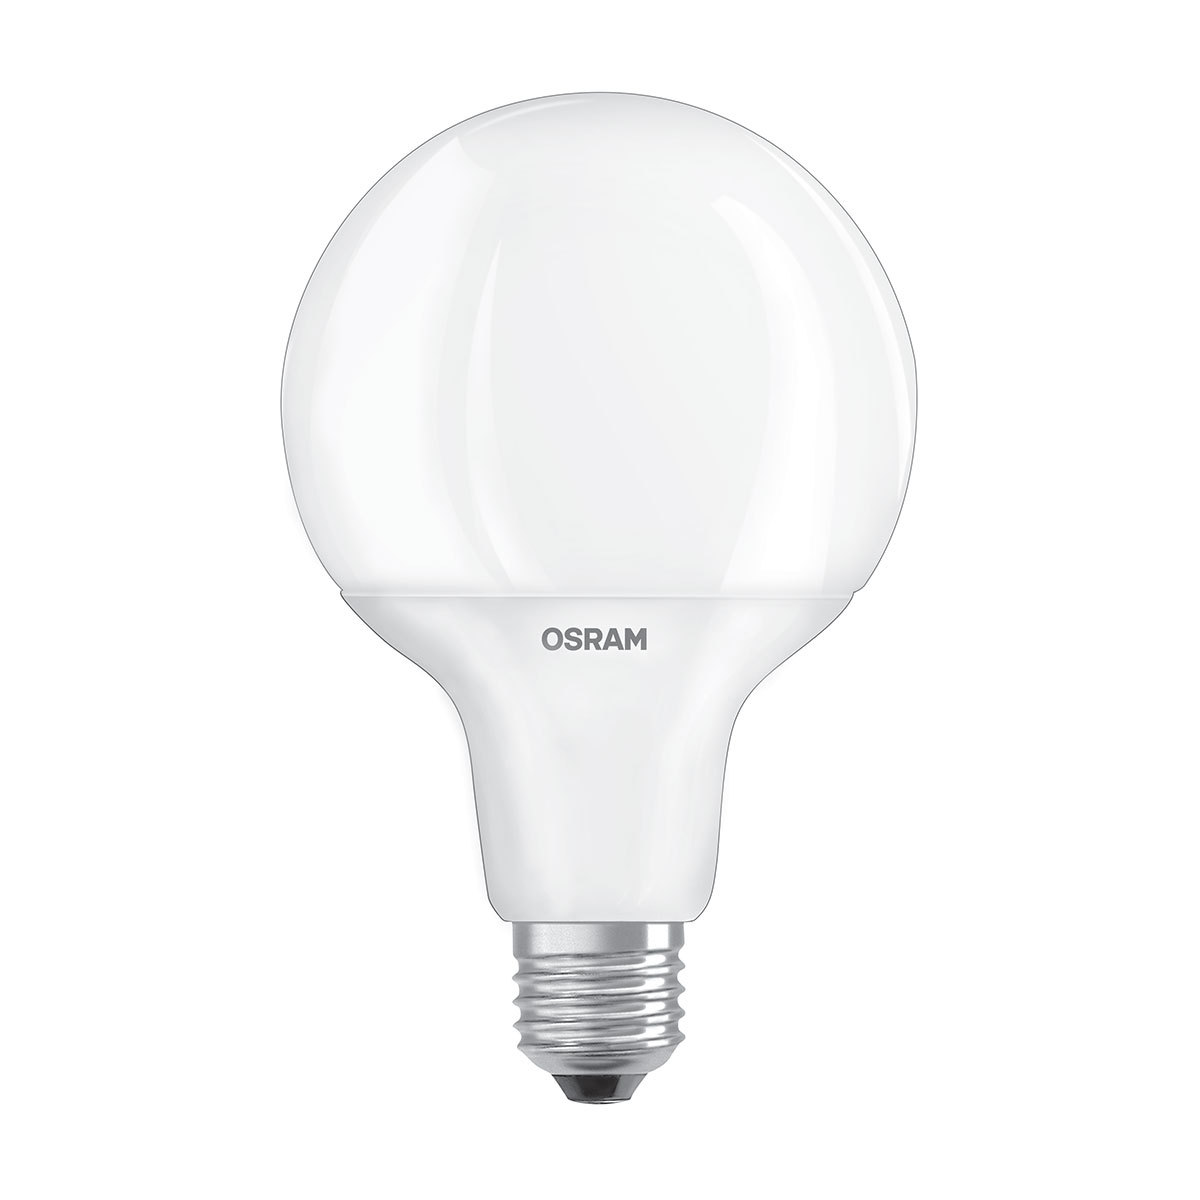 osram ampoule led superstar classic globe e27 9w 60w dimmable a ampoule led osram sur. Black Bedroom Furniture Sets. Home Design Ideas